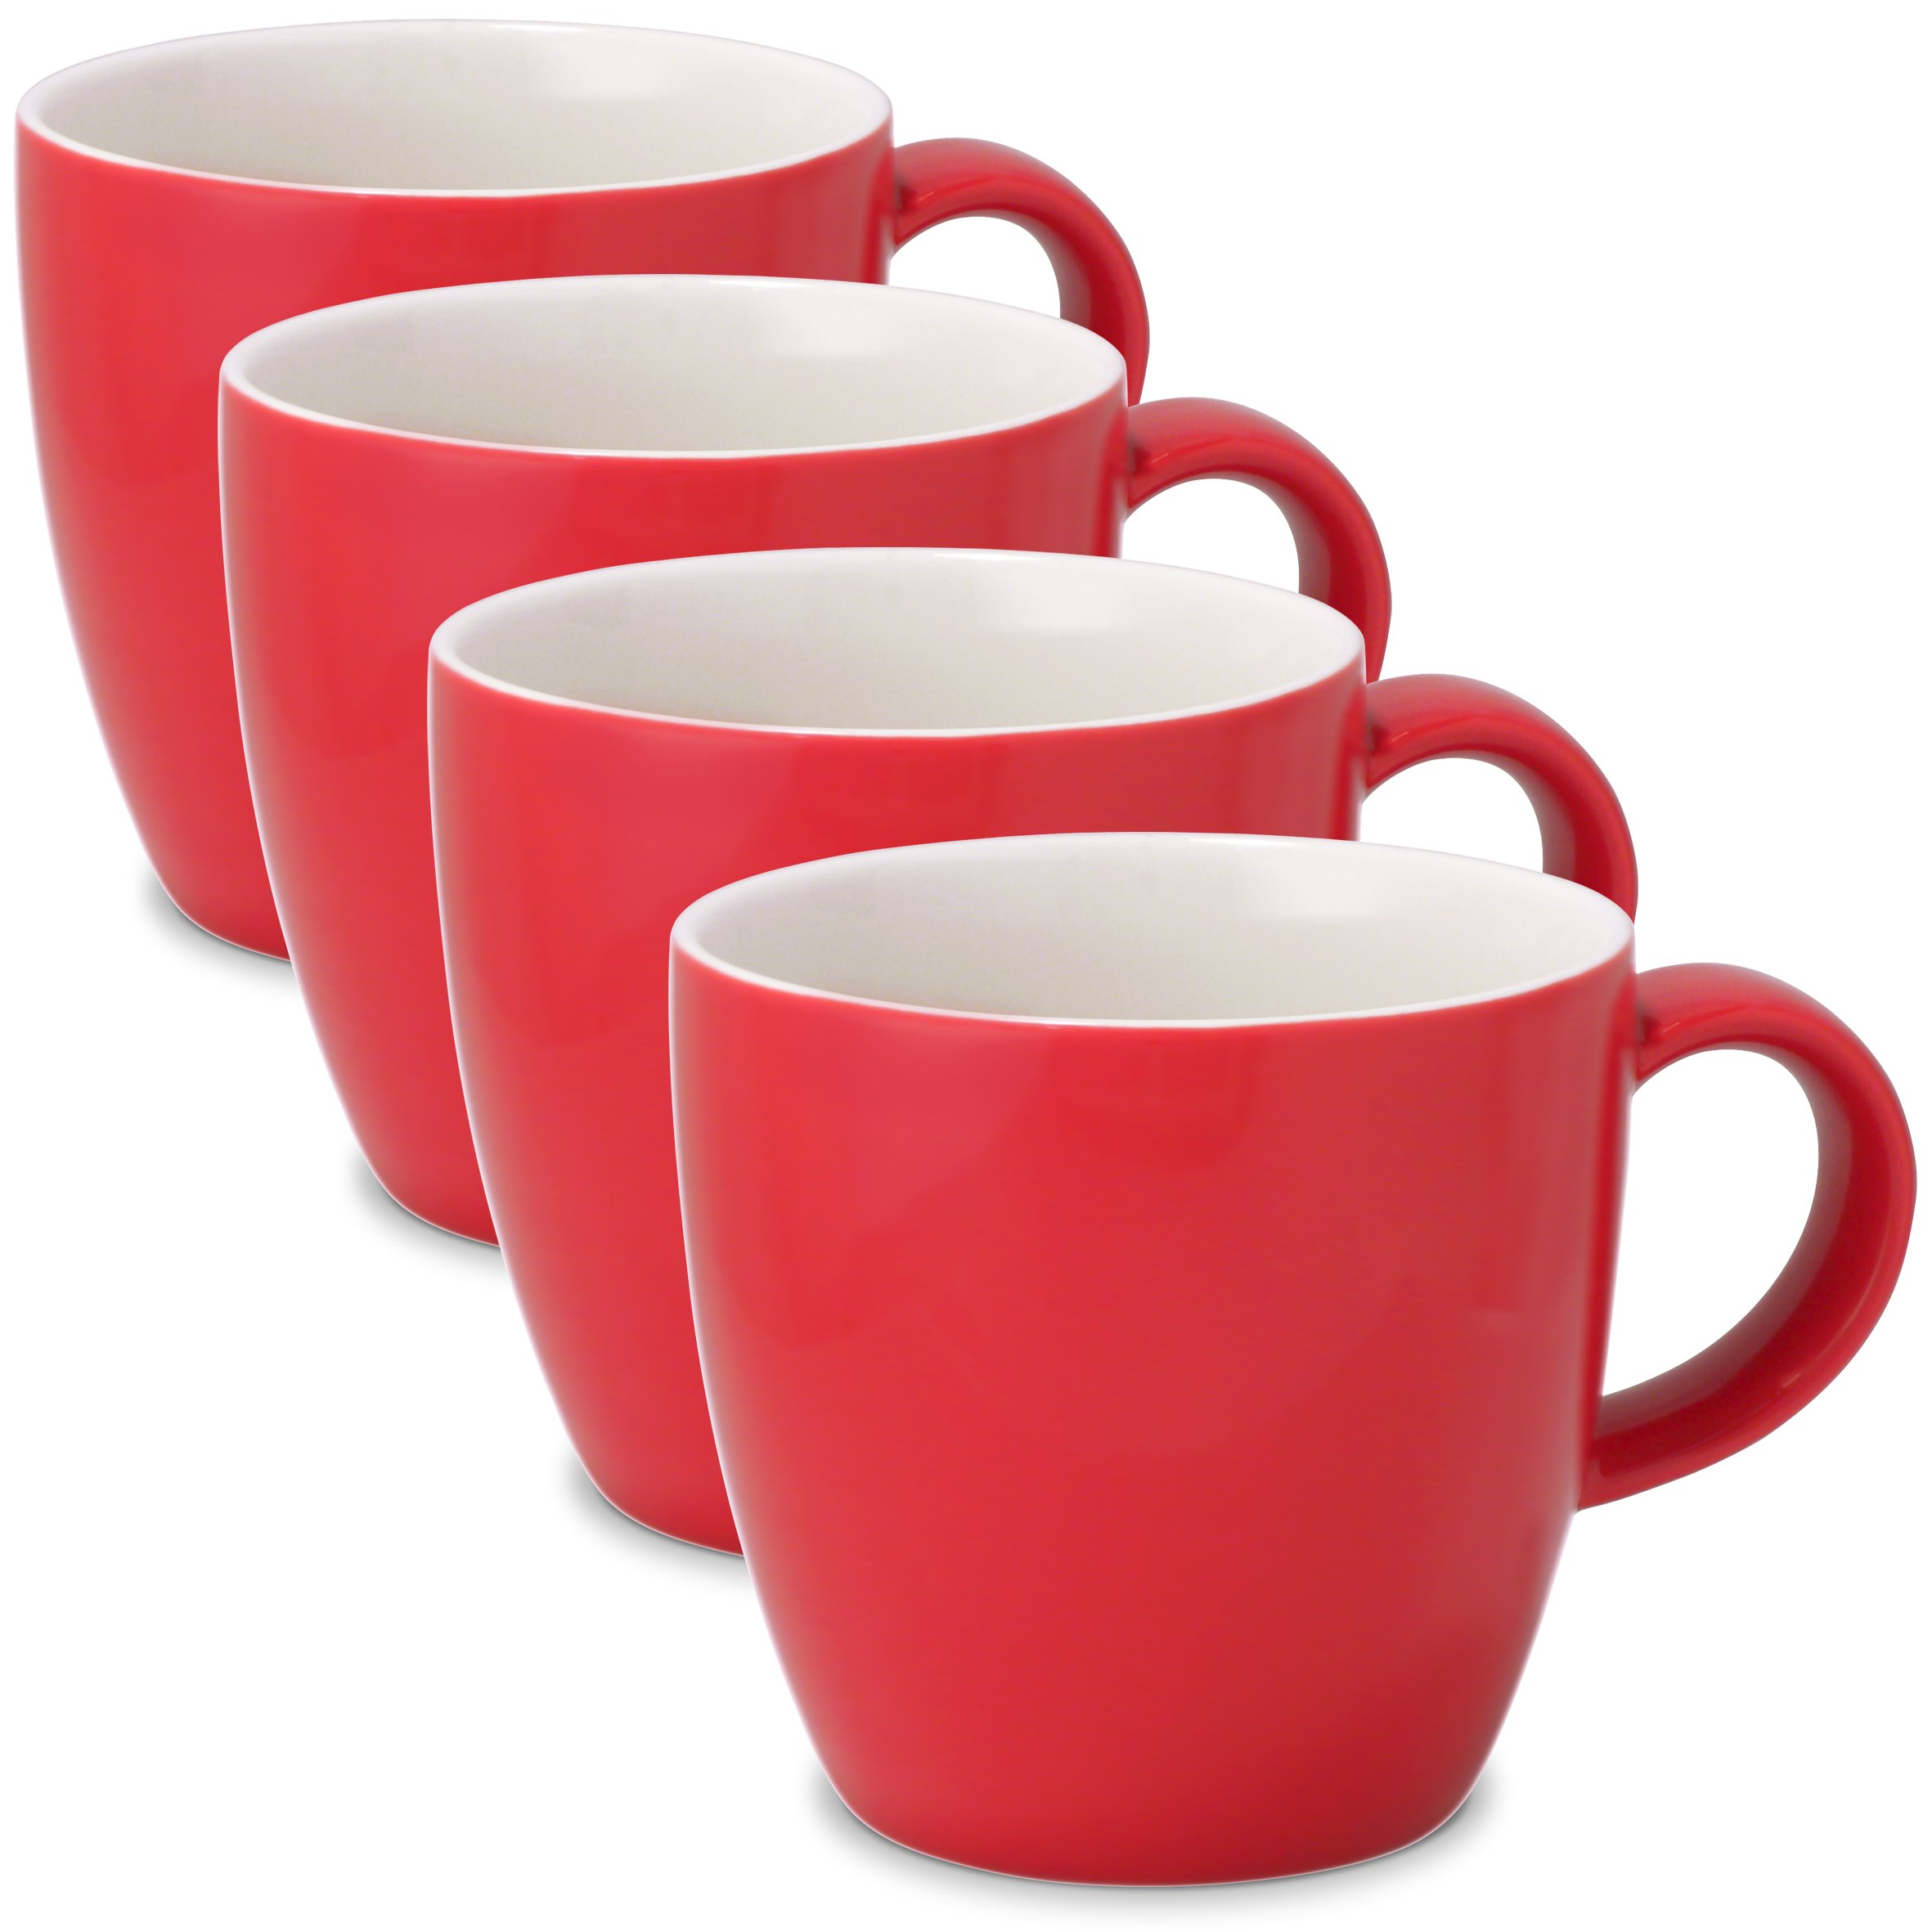 FORLIFE Uni Tea/Coffee Cup with Handle (Set of 4), 11 oz, Red